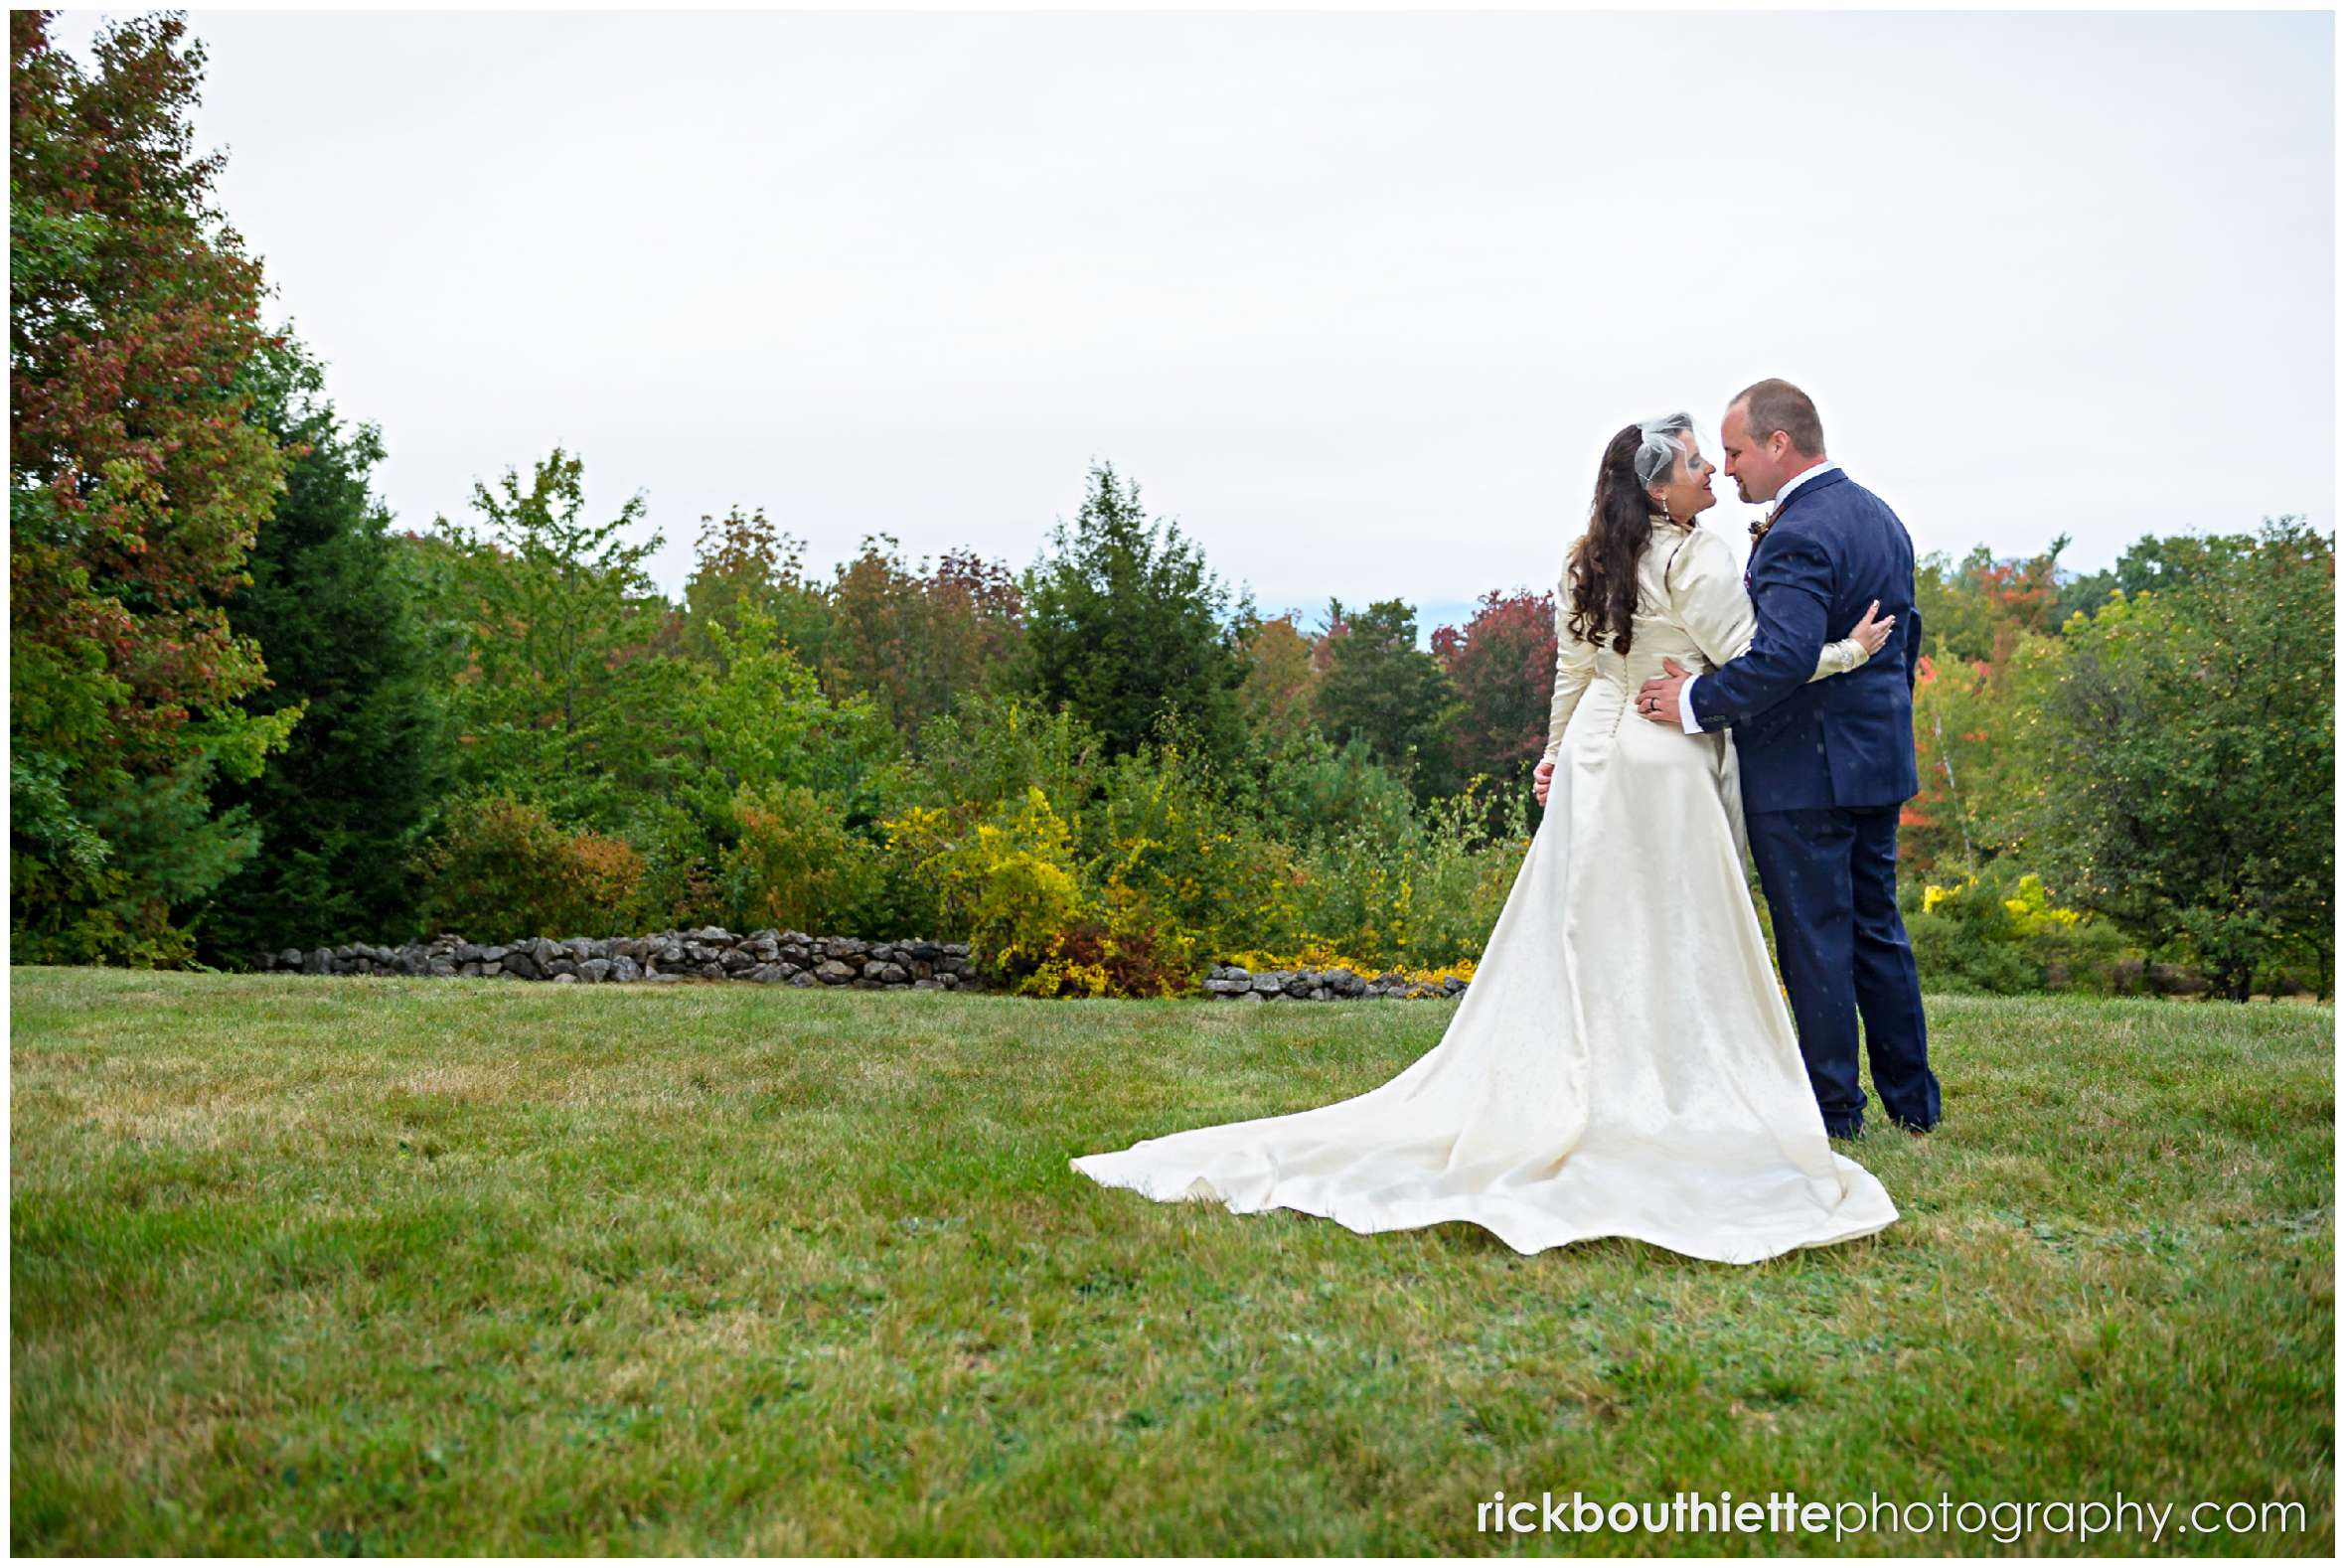 bride and groom enjoying the fall foliage after their wedding ceremony